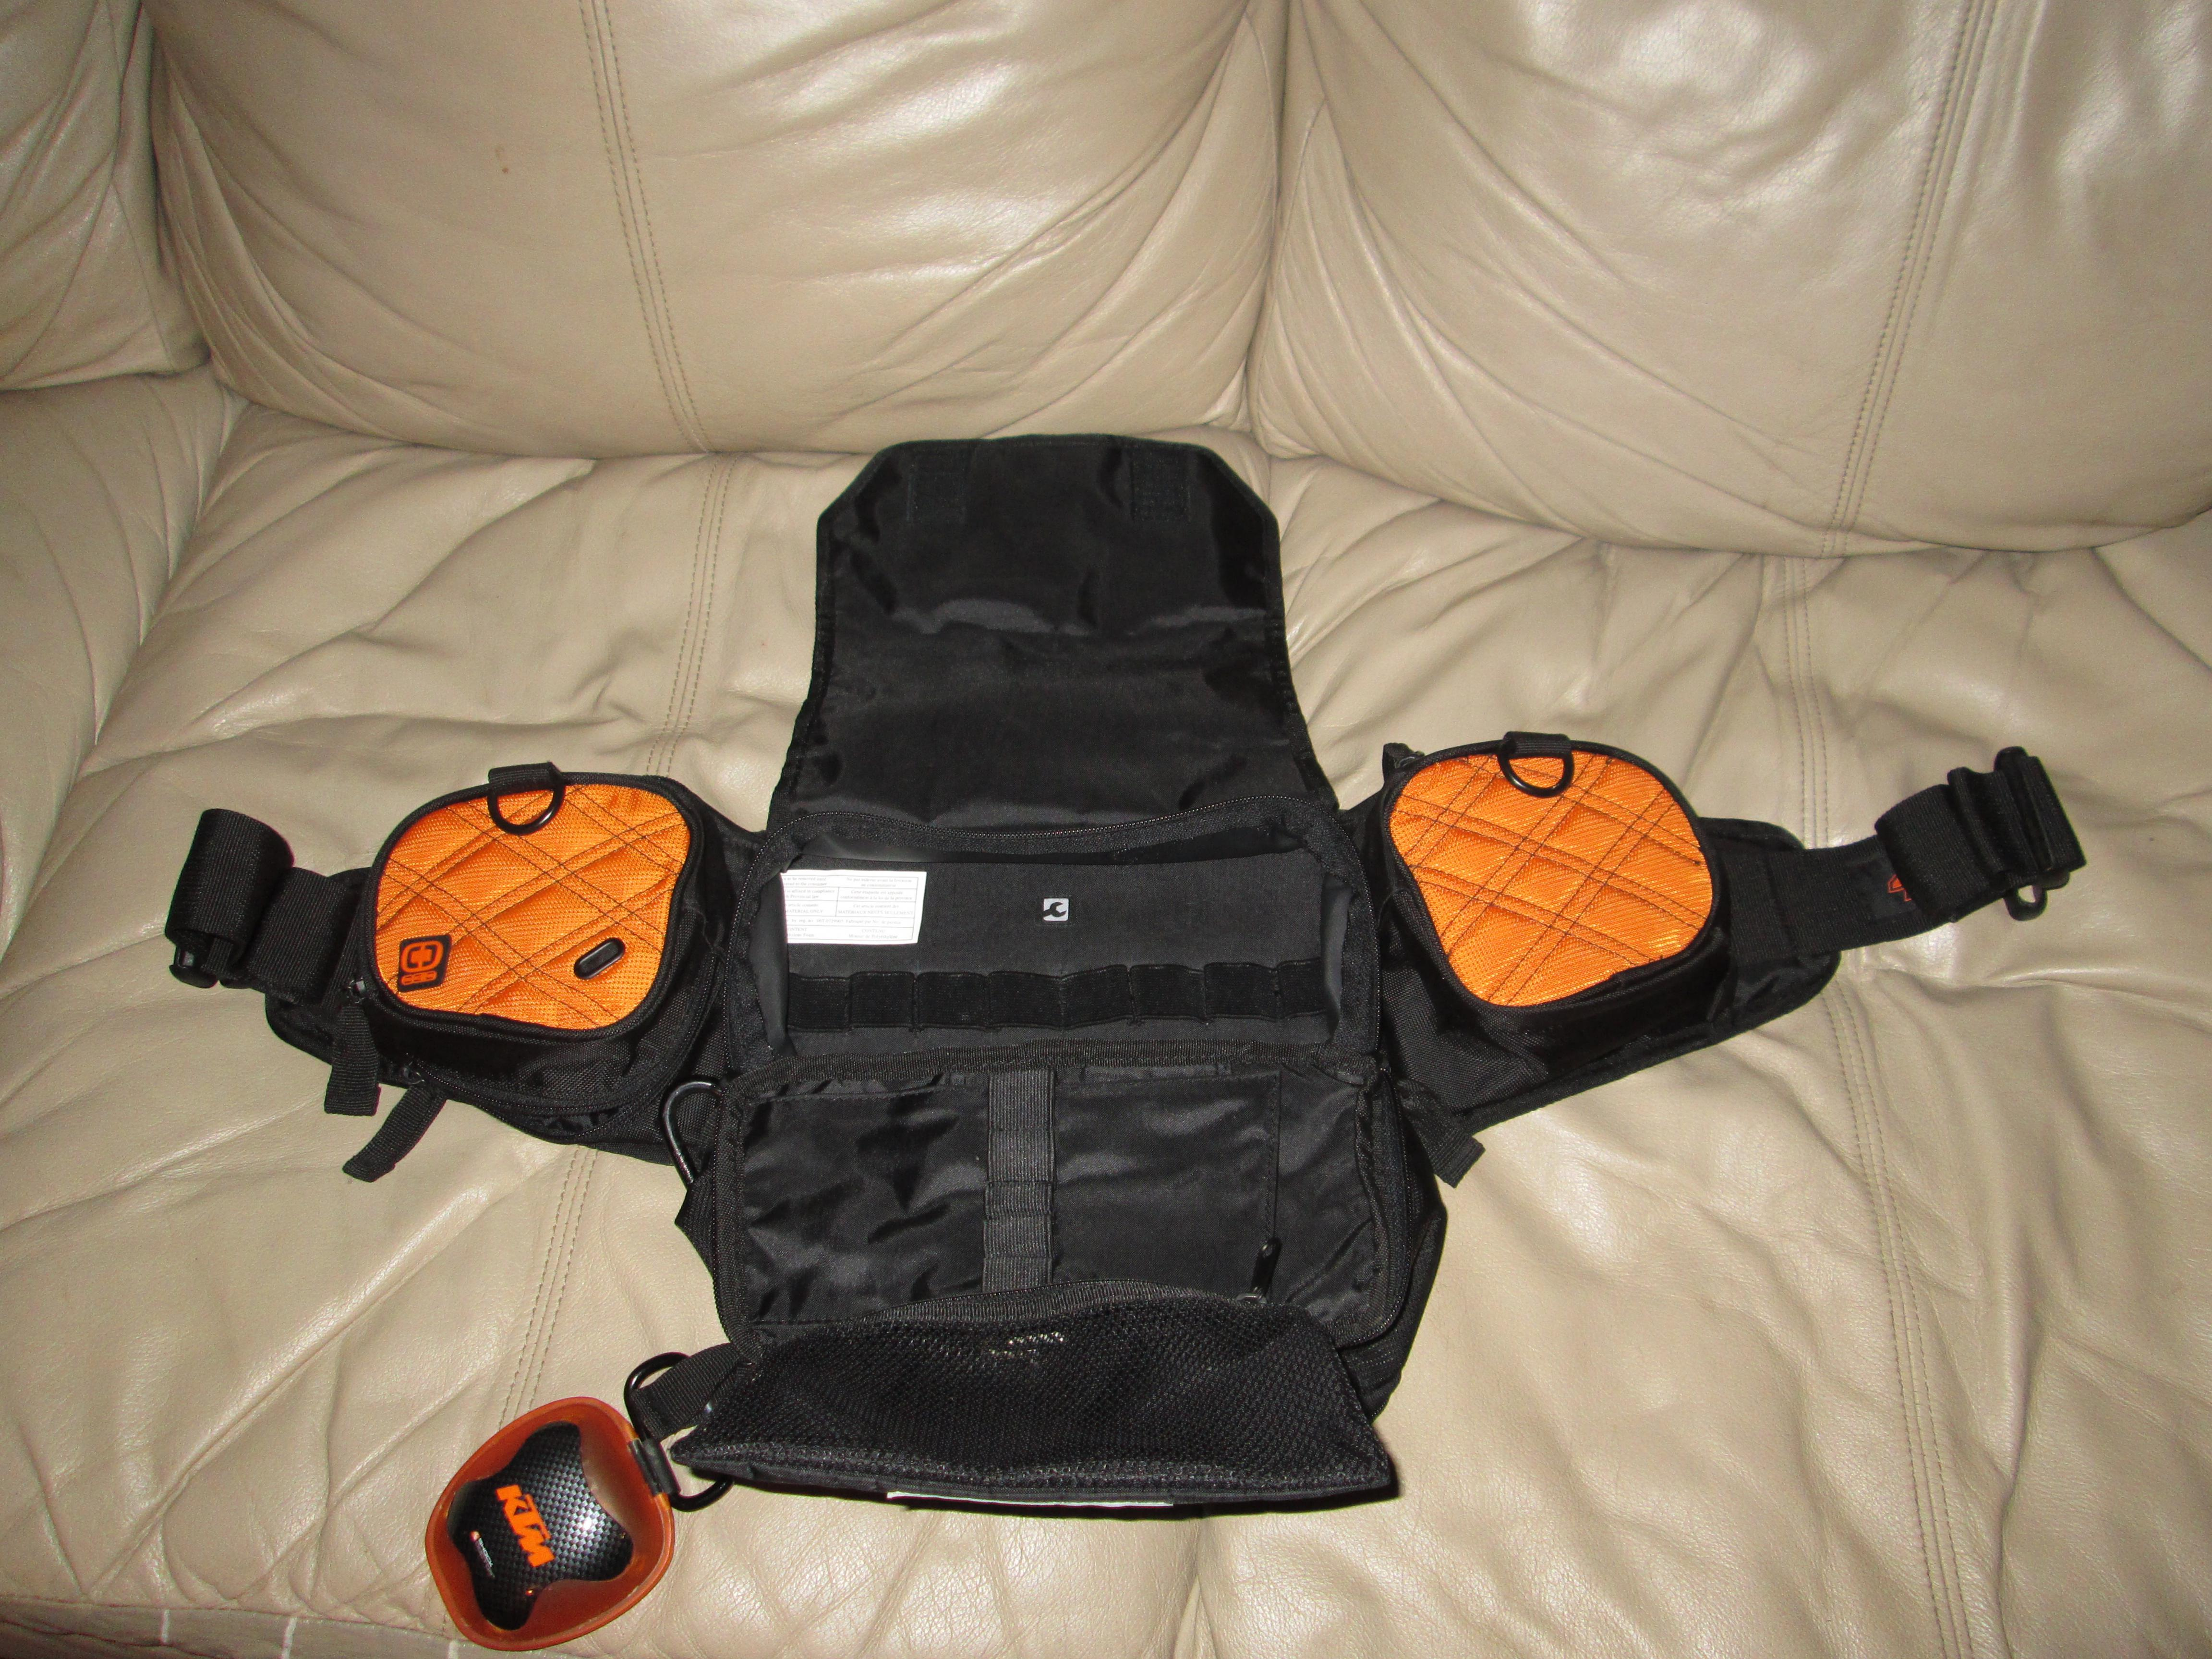 What is everyone using for storage while riding ? - Backpack or belt bag made by KTM-img_0254.jpg